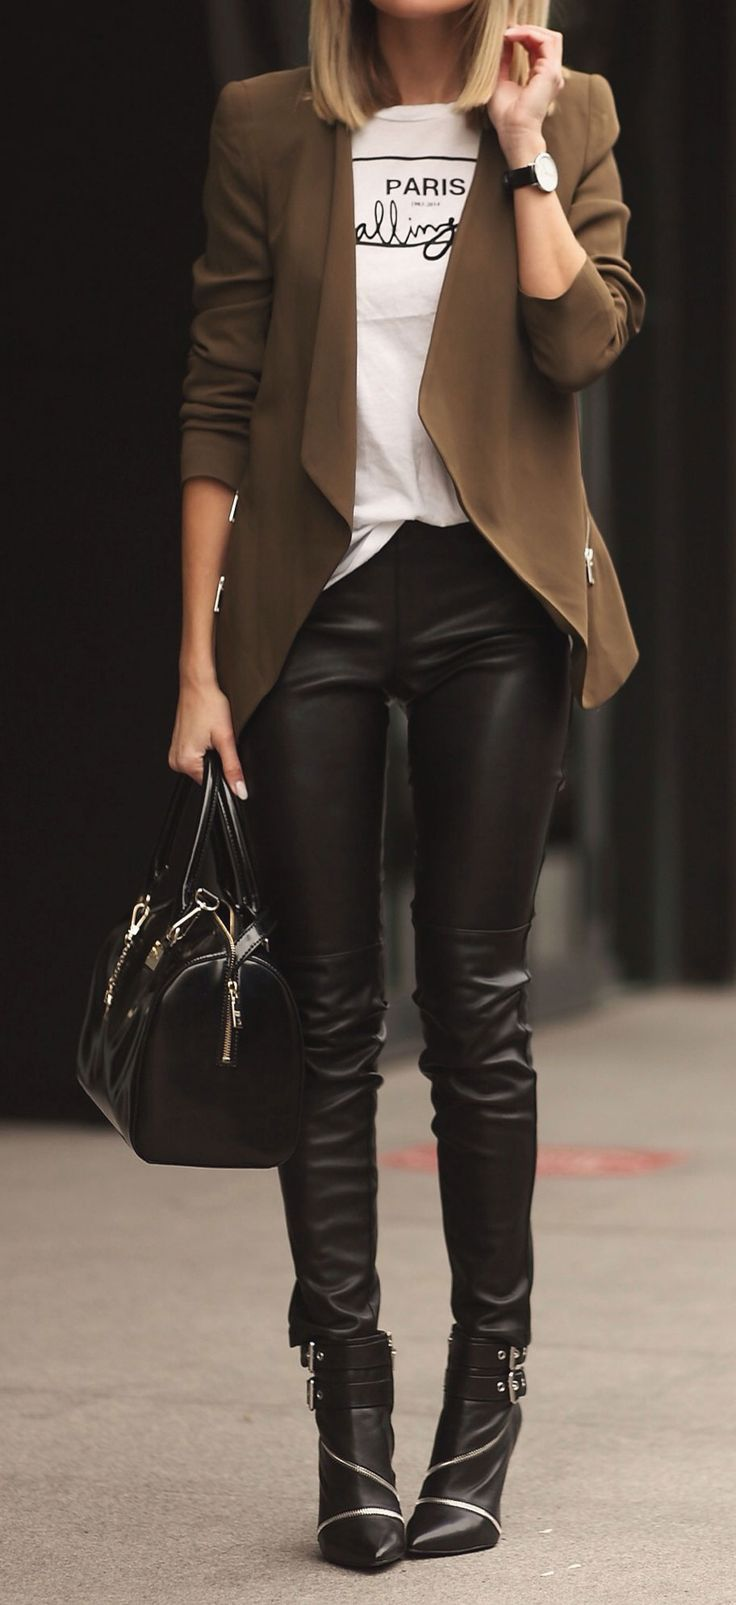 Taupe + black. Classic fall and winter style statement. Cute but I would do different shoes